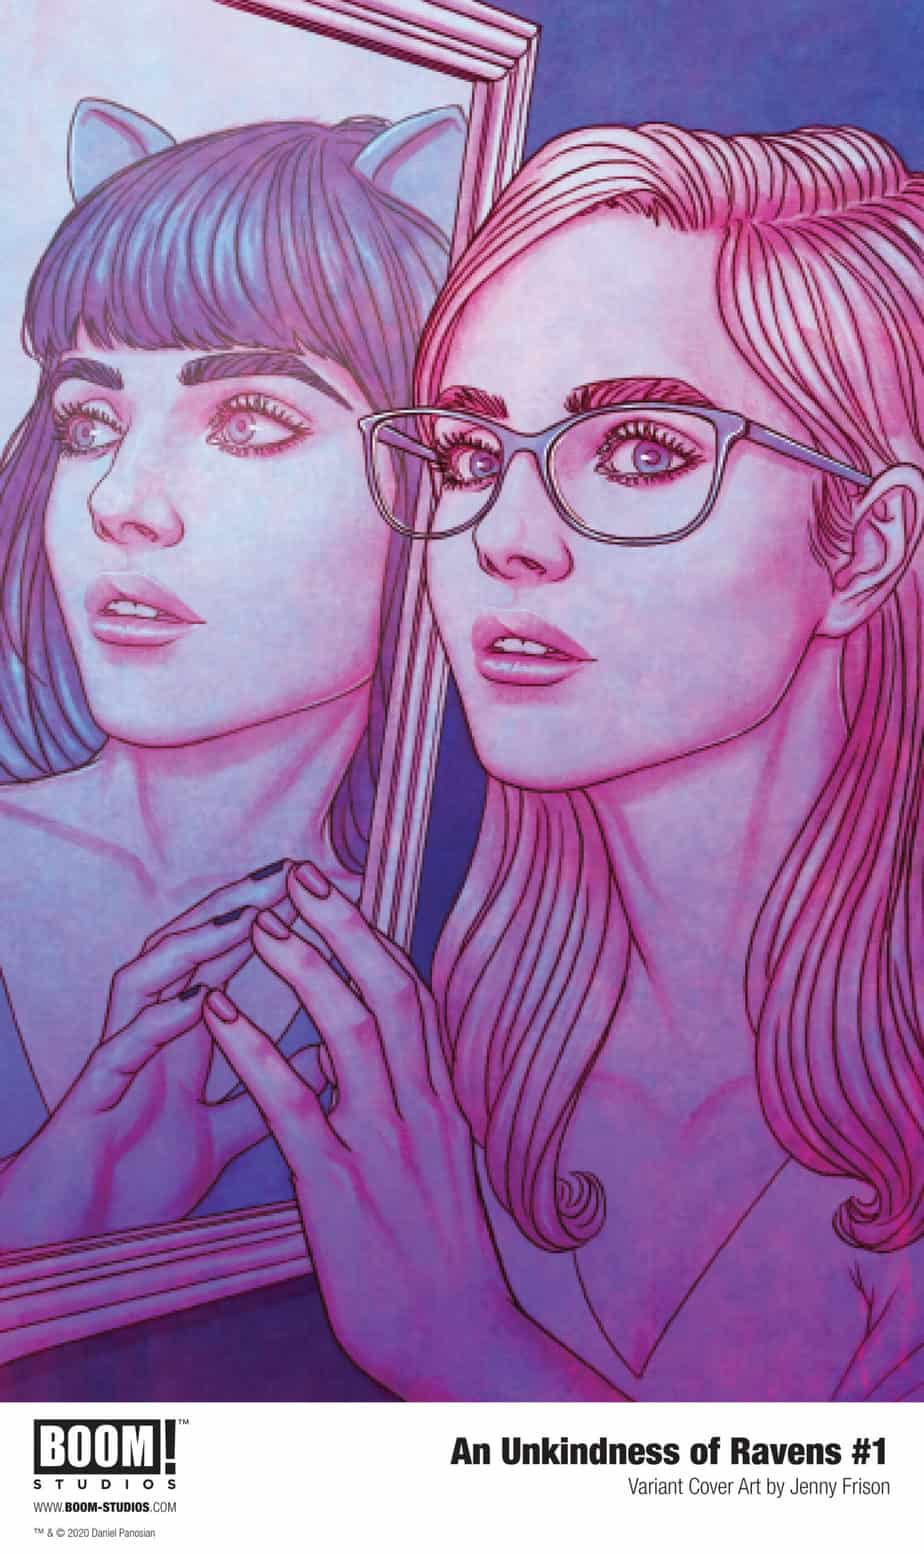 AN UNKINDNESS OF RAVENS #1 - Variant Cover by Jenny Frison